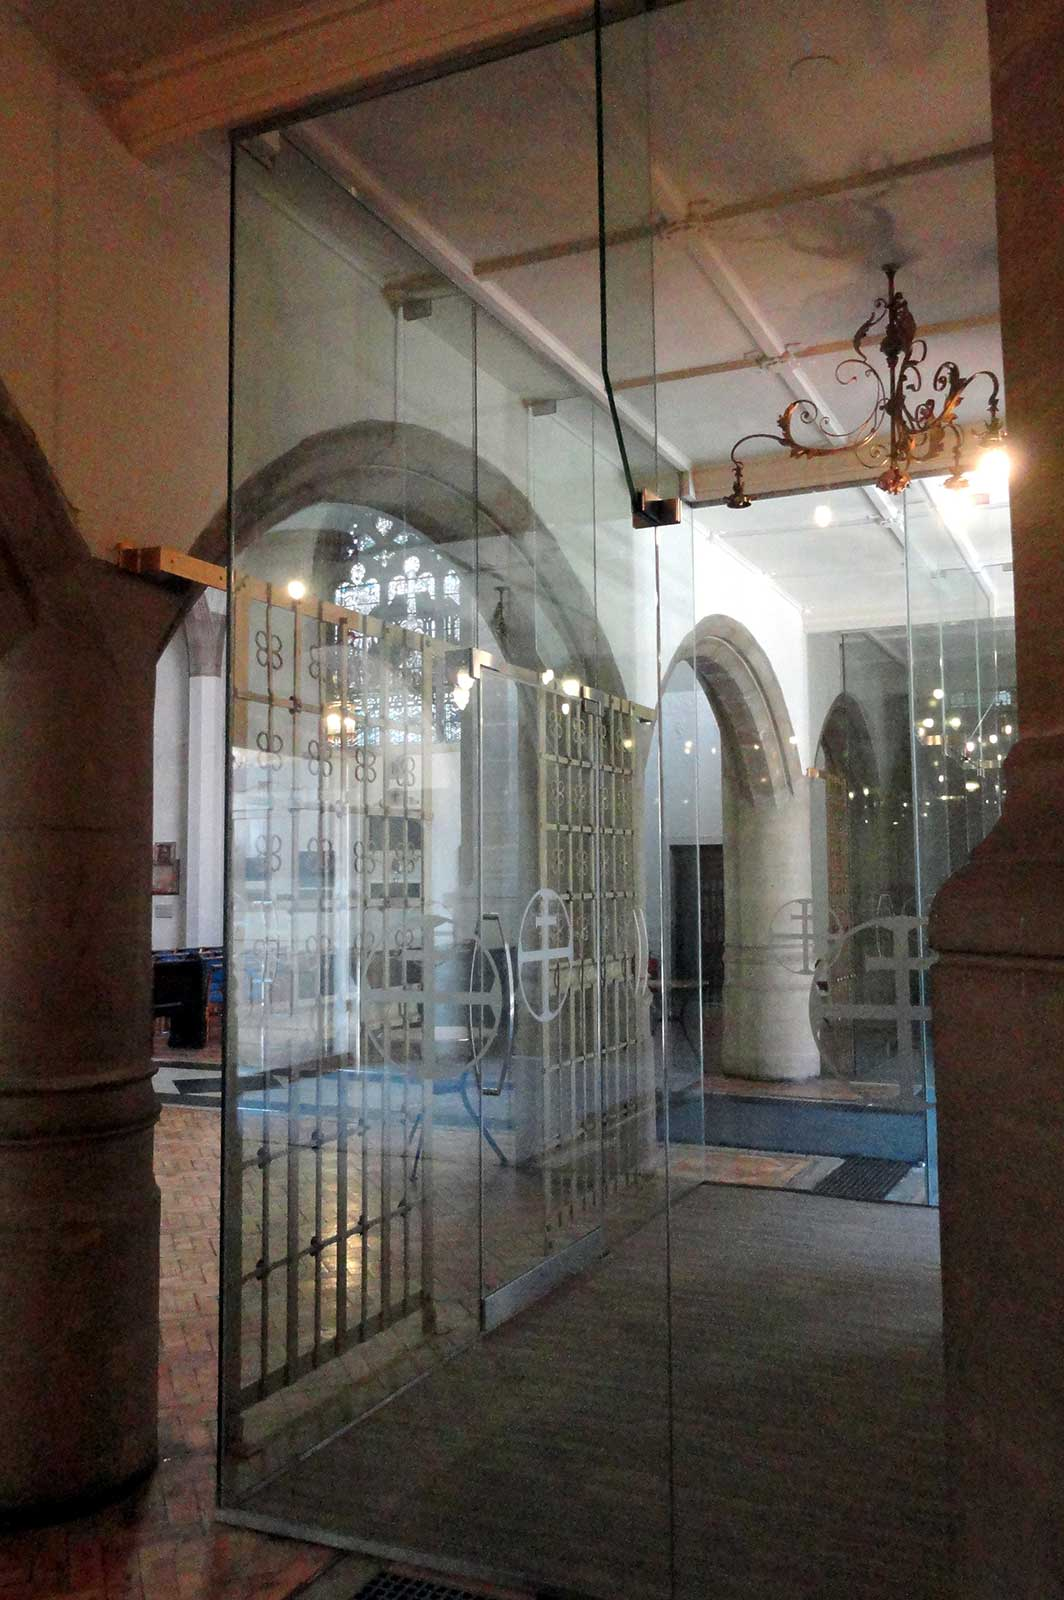 Holy Trinity Church Sloane Square Glass Meeting Rooms